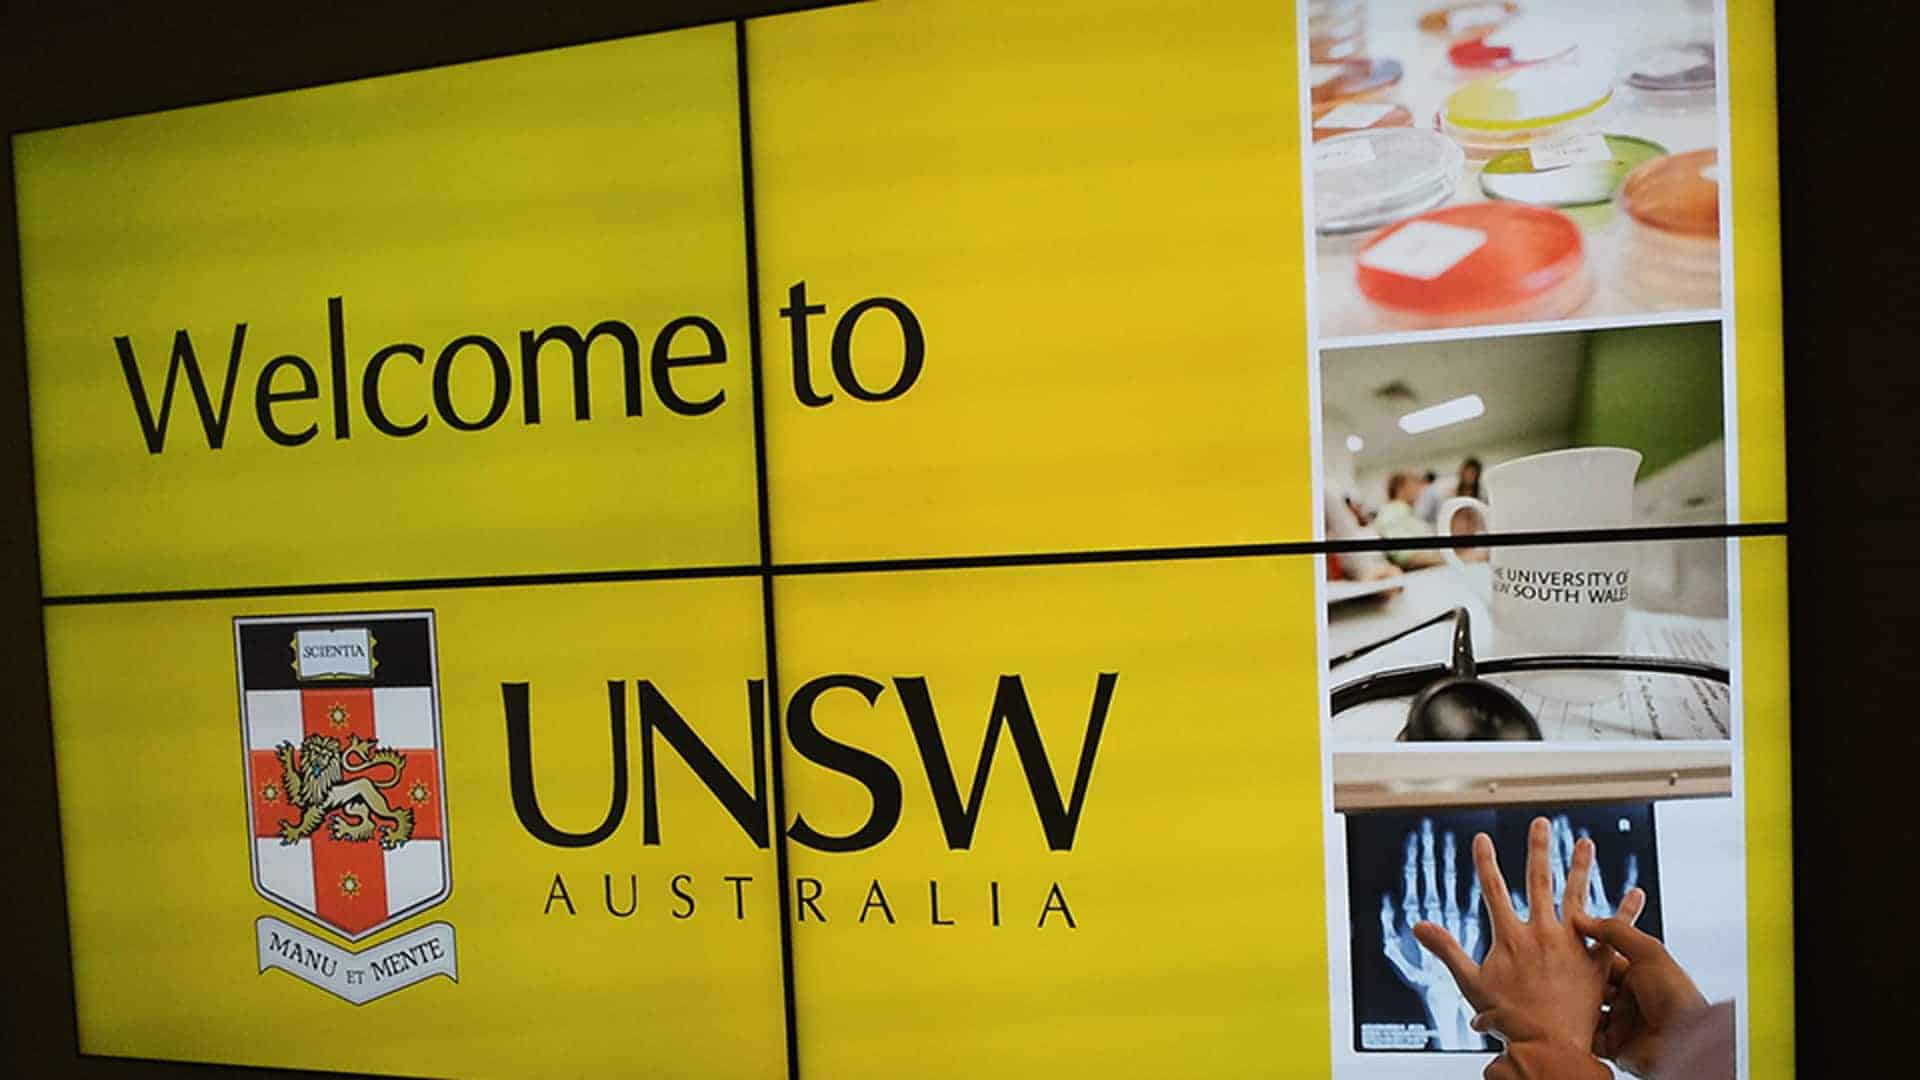 Video Wall Videowall UNSW Faculty of Medicine